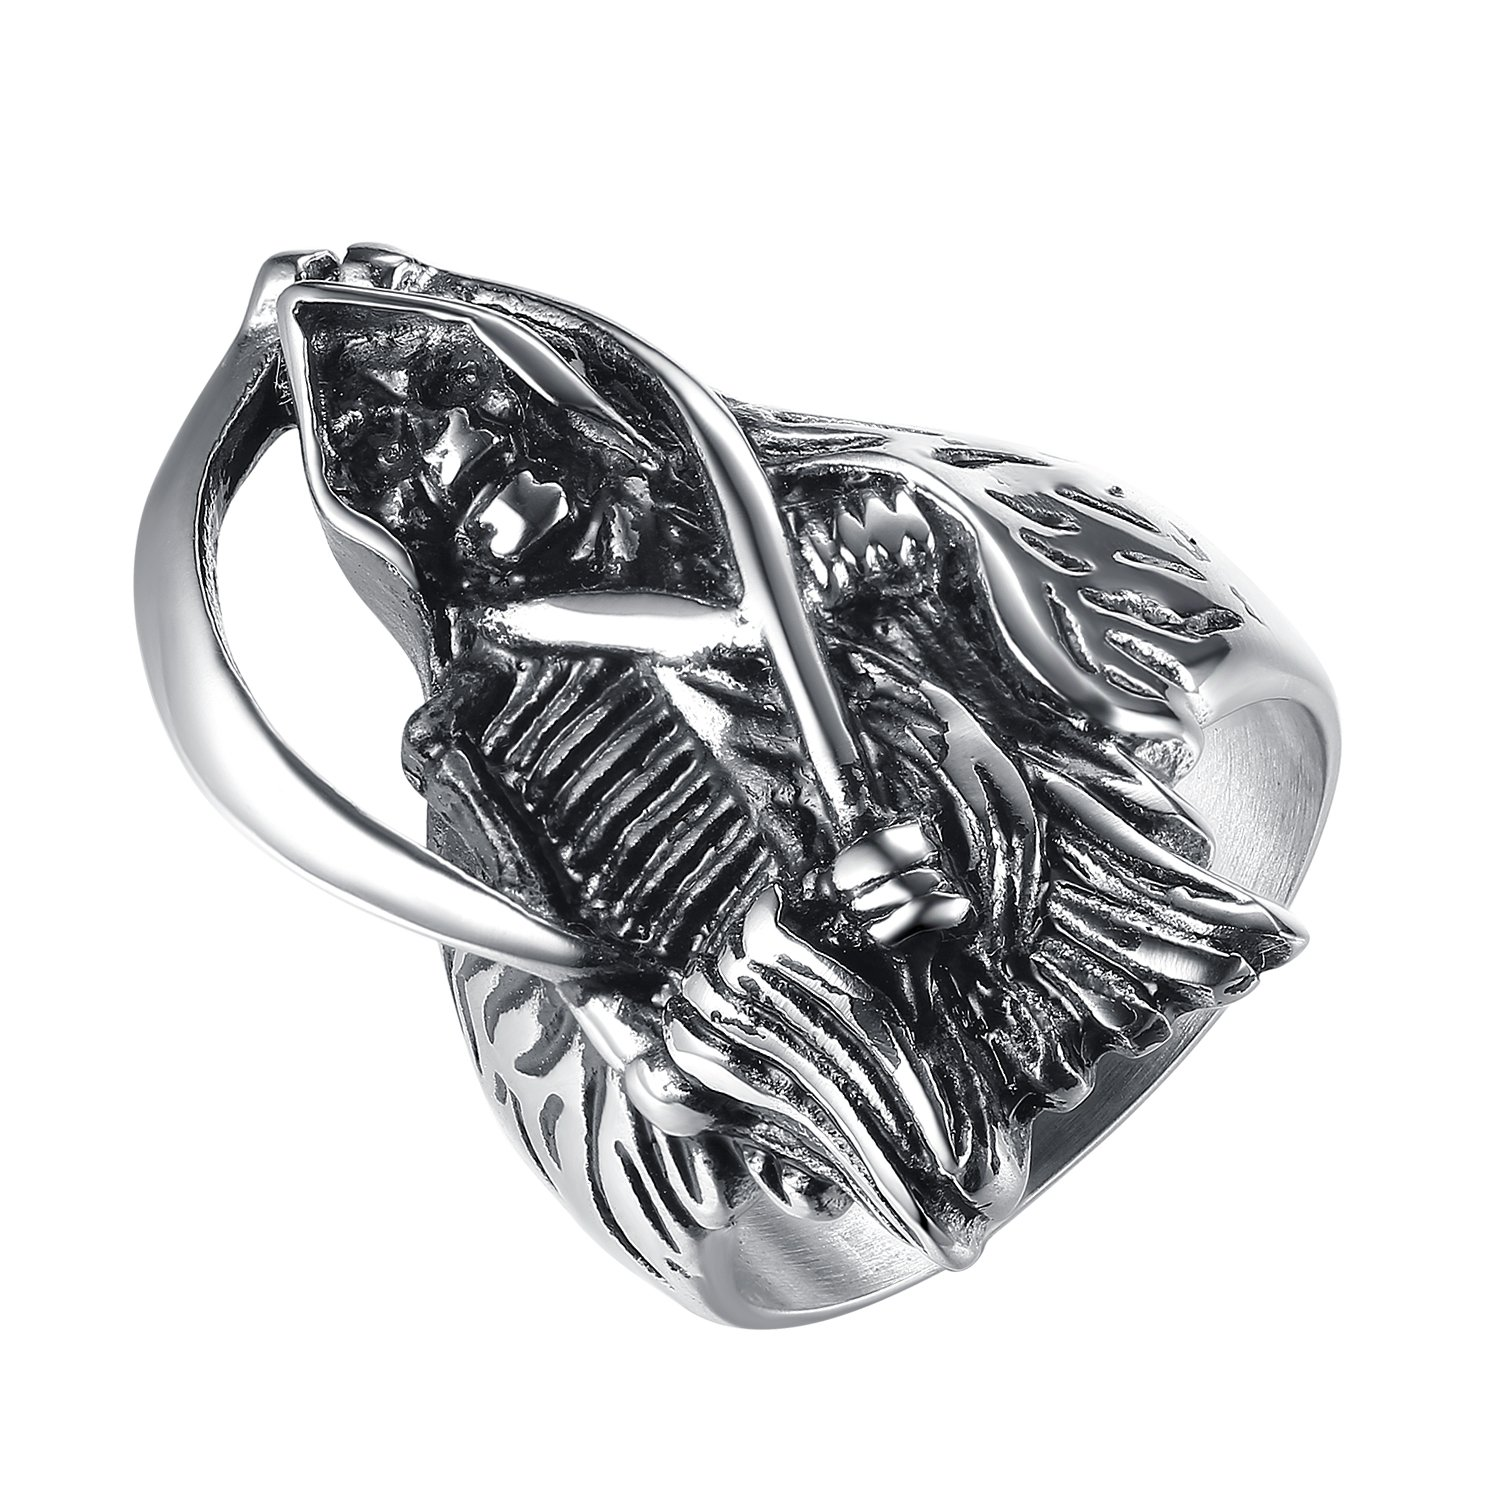 LineAve Men's Stainless Steel Grim Reaper Death Ring, Size 8, 8a5013s08 by LineAve (Image #1)